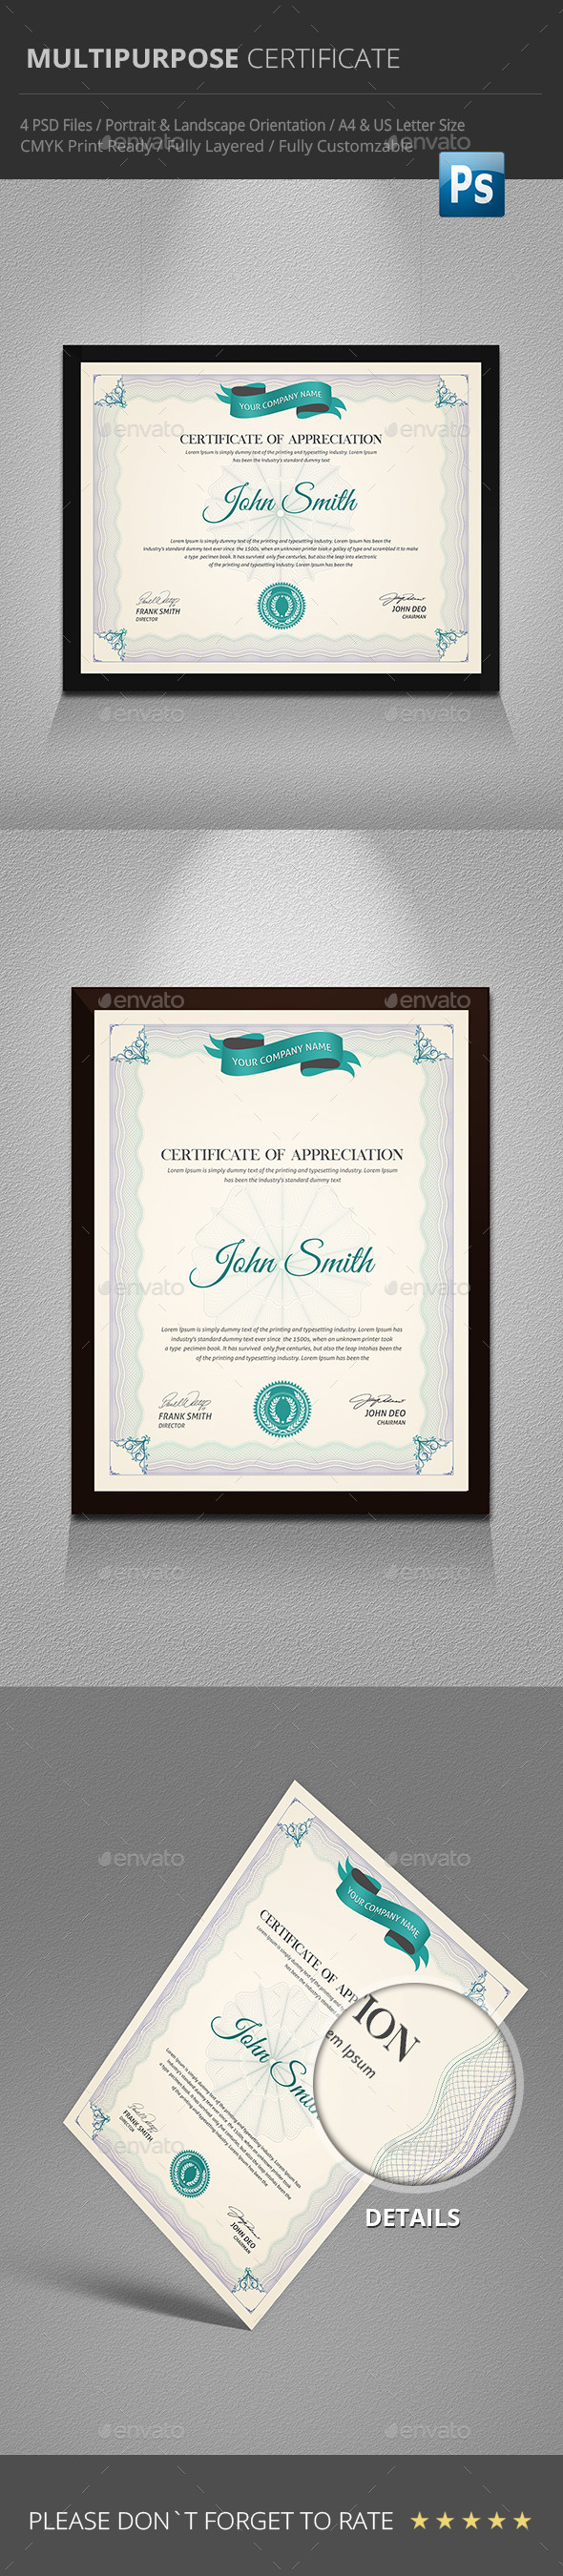 GraphicRiver Multipurpose Certificate 9691616